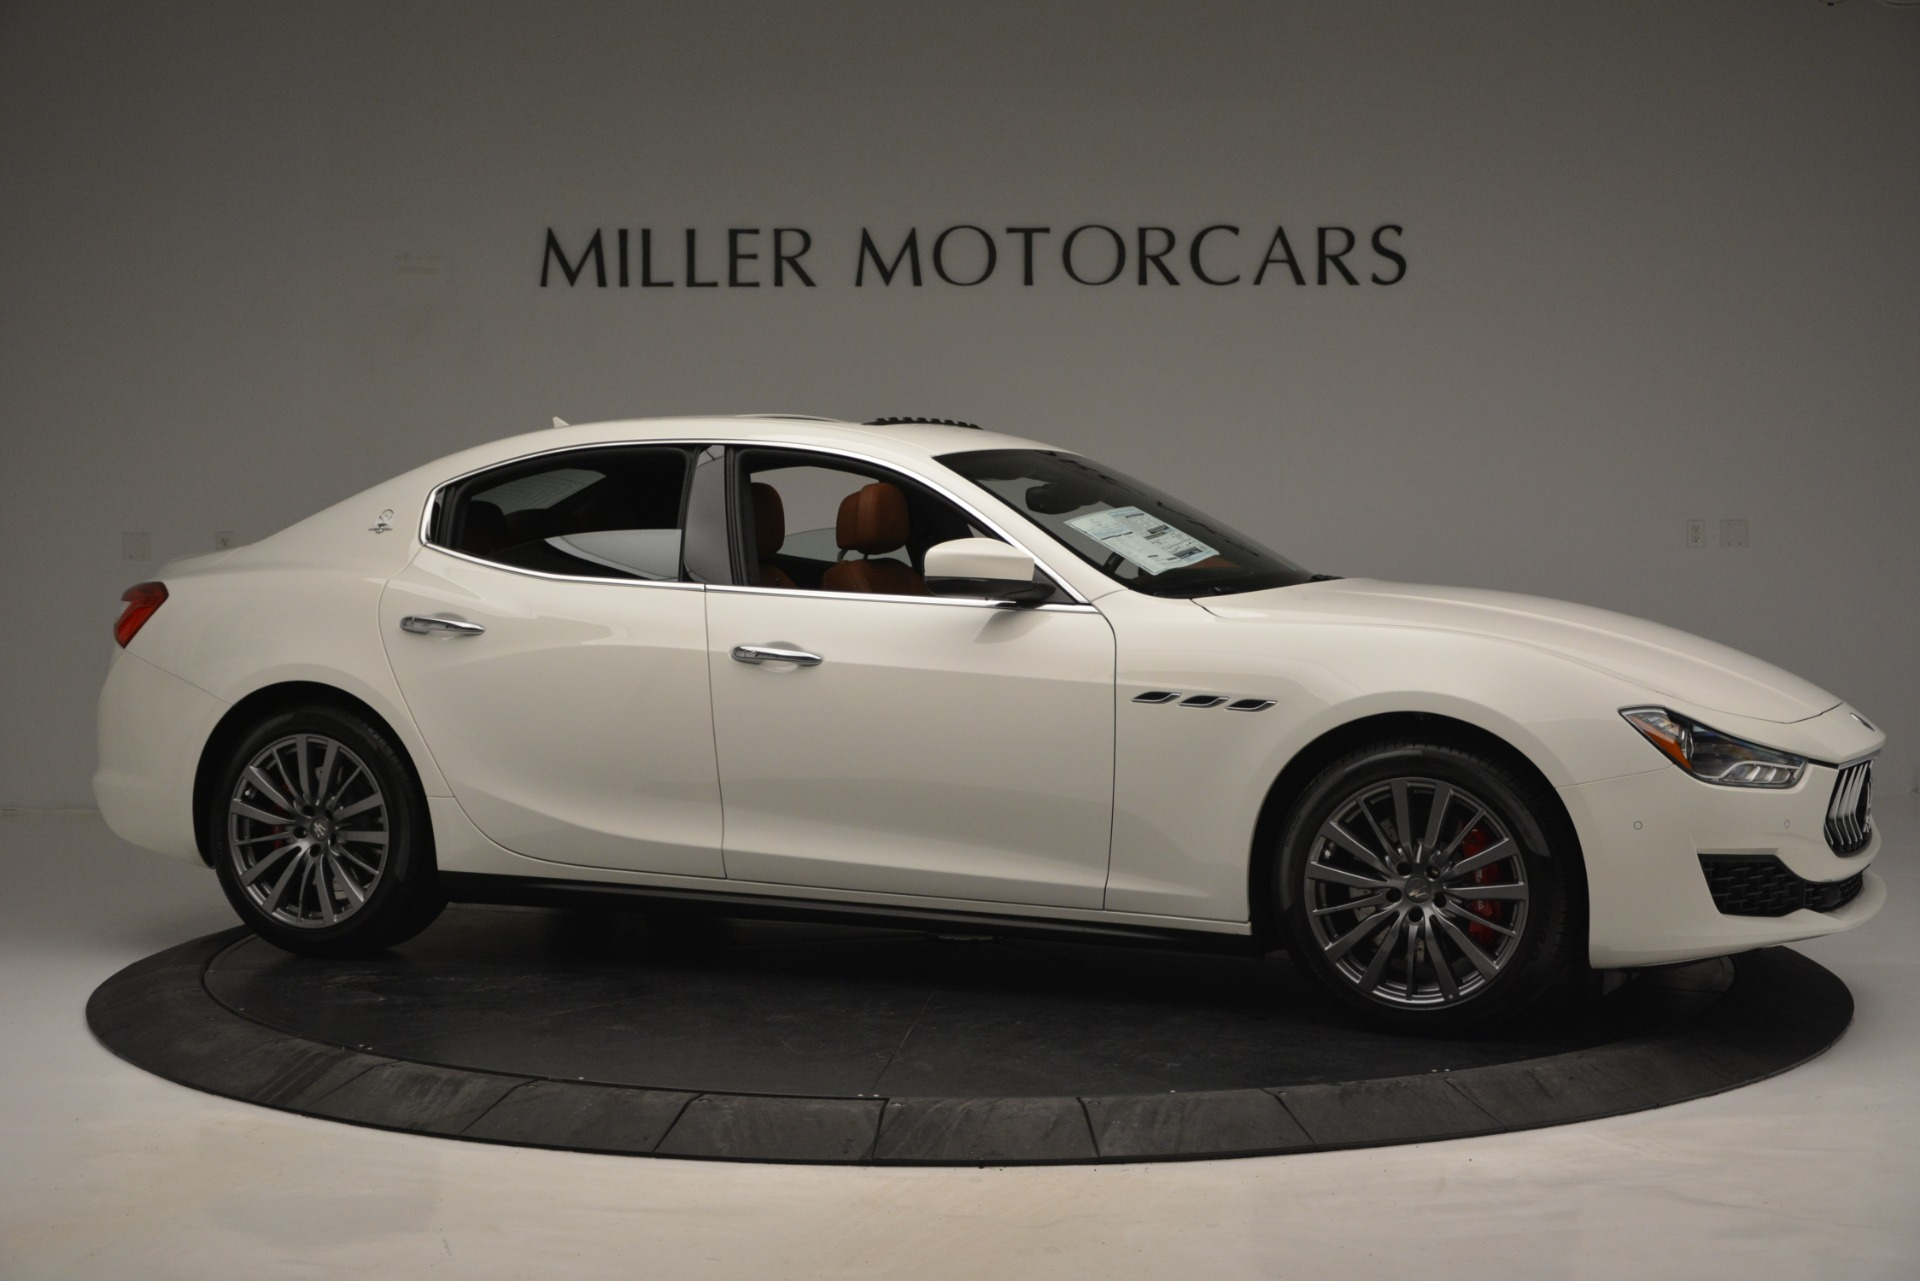 New 2019 Maserati Ghibli S Q4 For Sale In Greenwich, CT 2795_p13